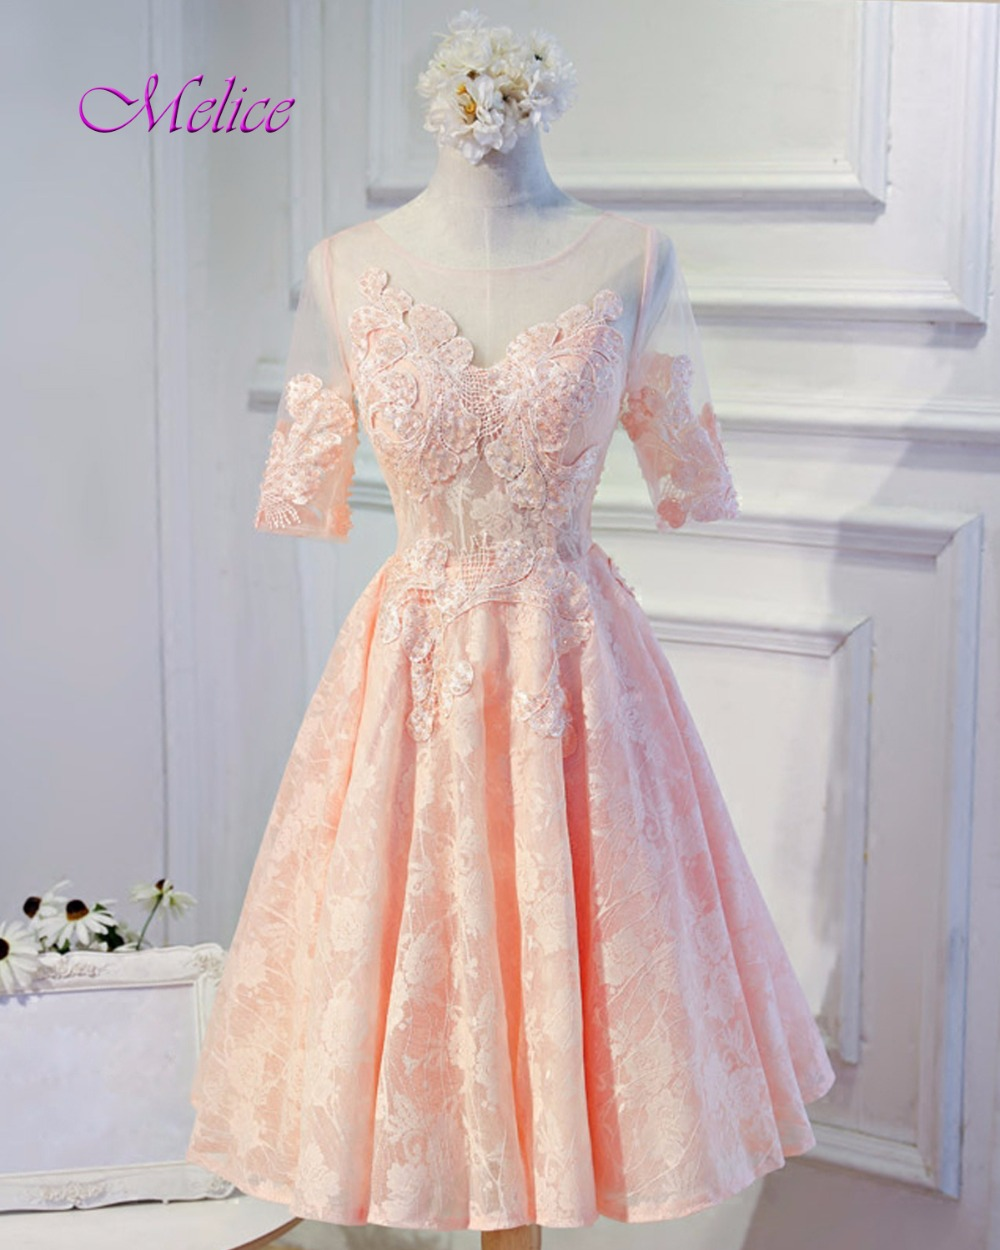 Melice New Fashion O neck Half Sleeve Pink Princess Lace Prom Dress 2019  Graceful Appliques Formal Party Gown Vestido de Festa-in Prom Dresses from  Weddings ... ed2f1e1579a1